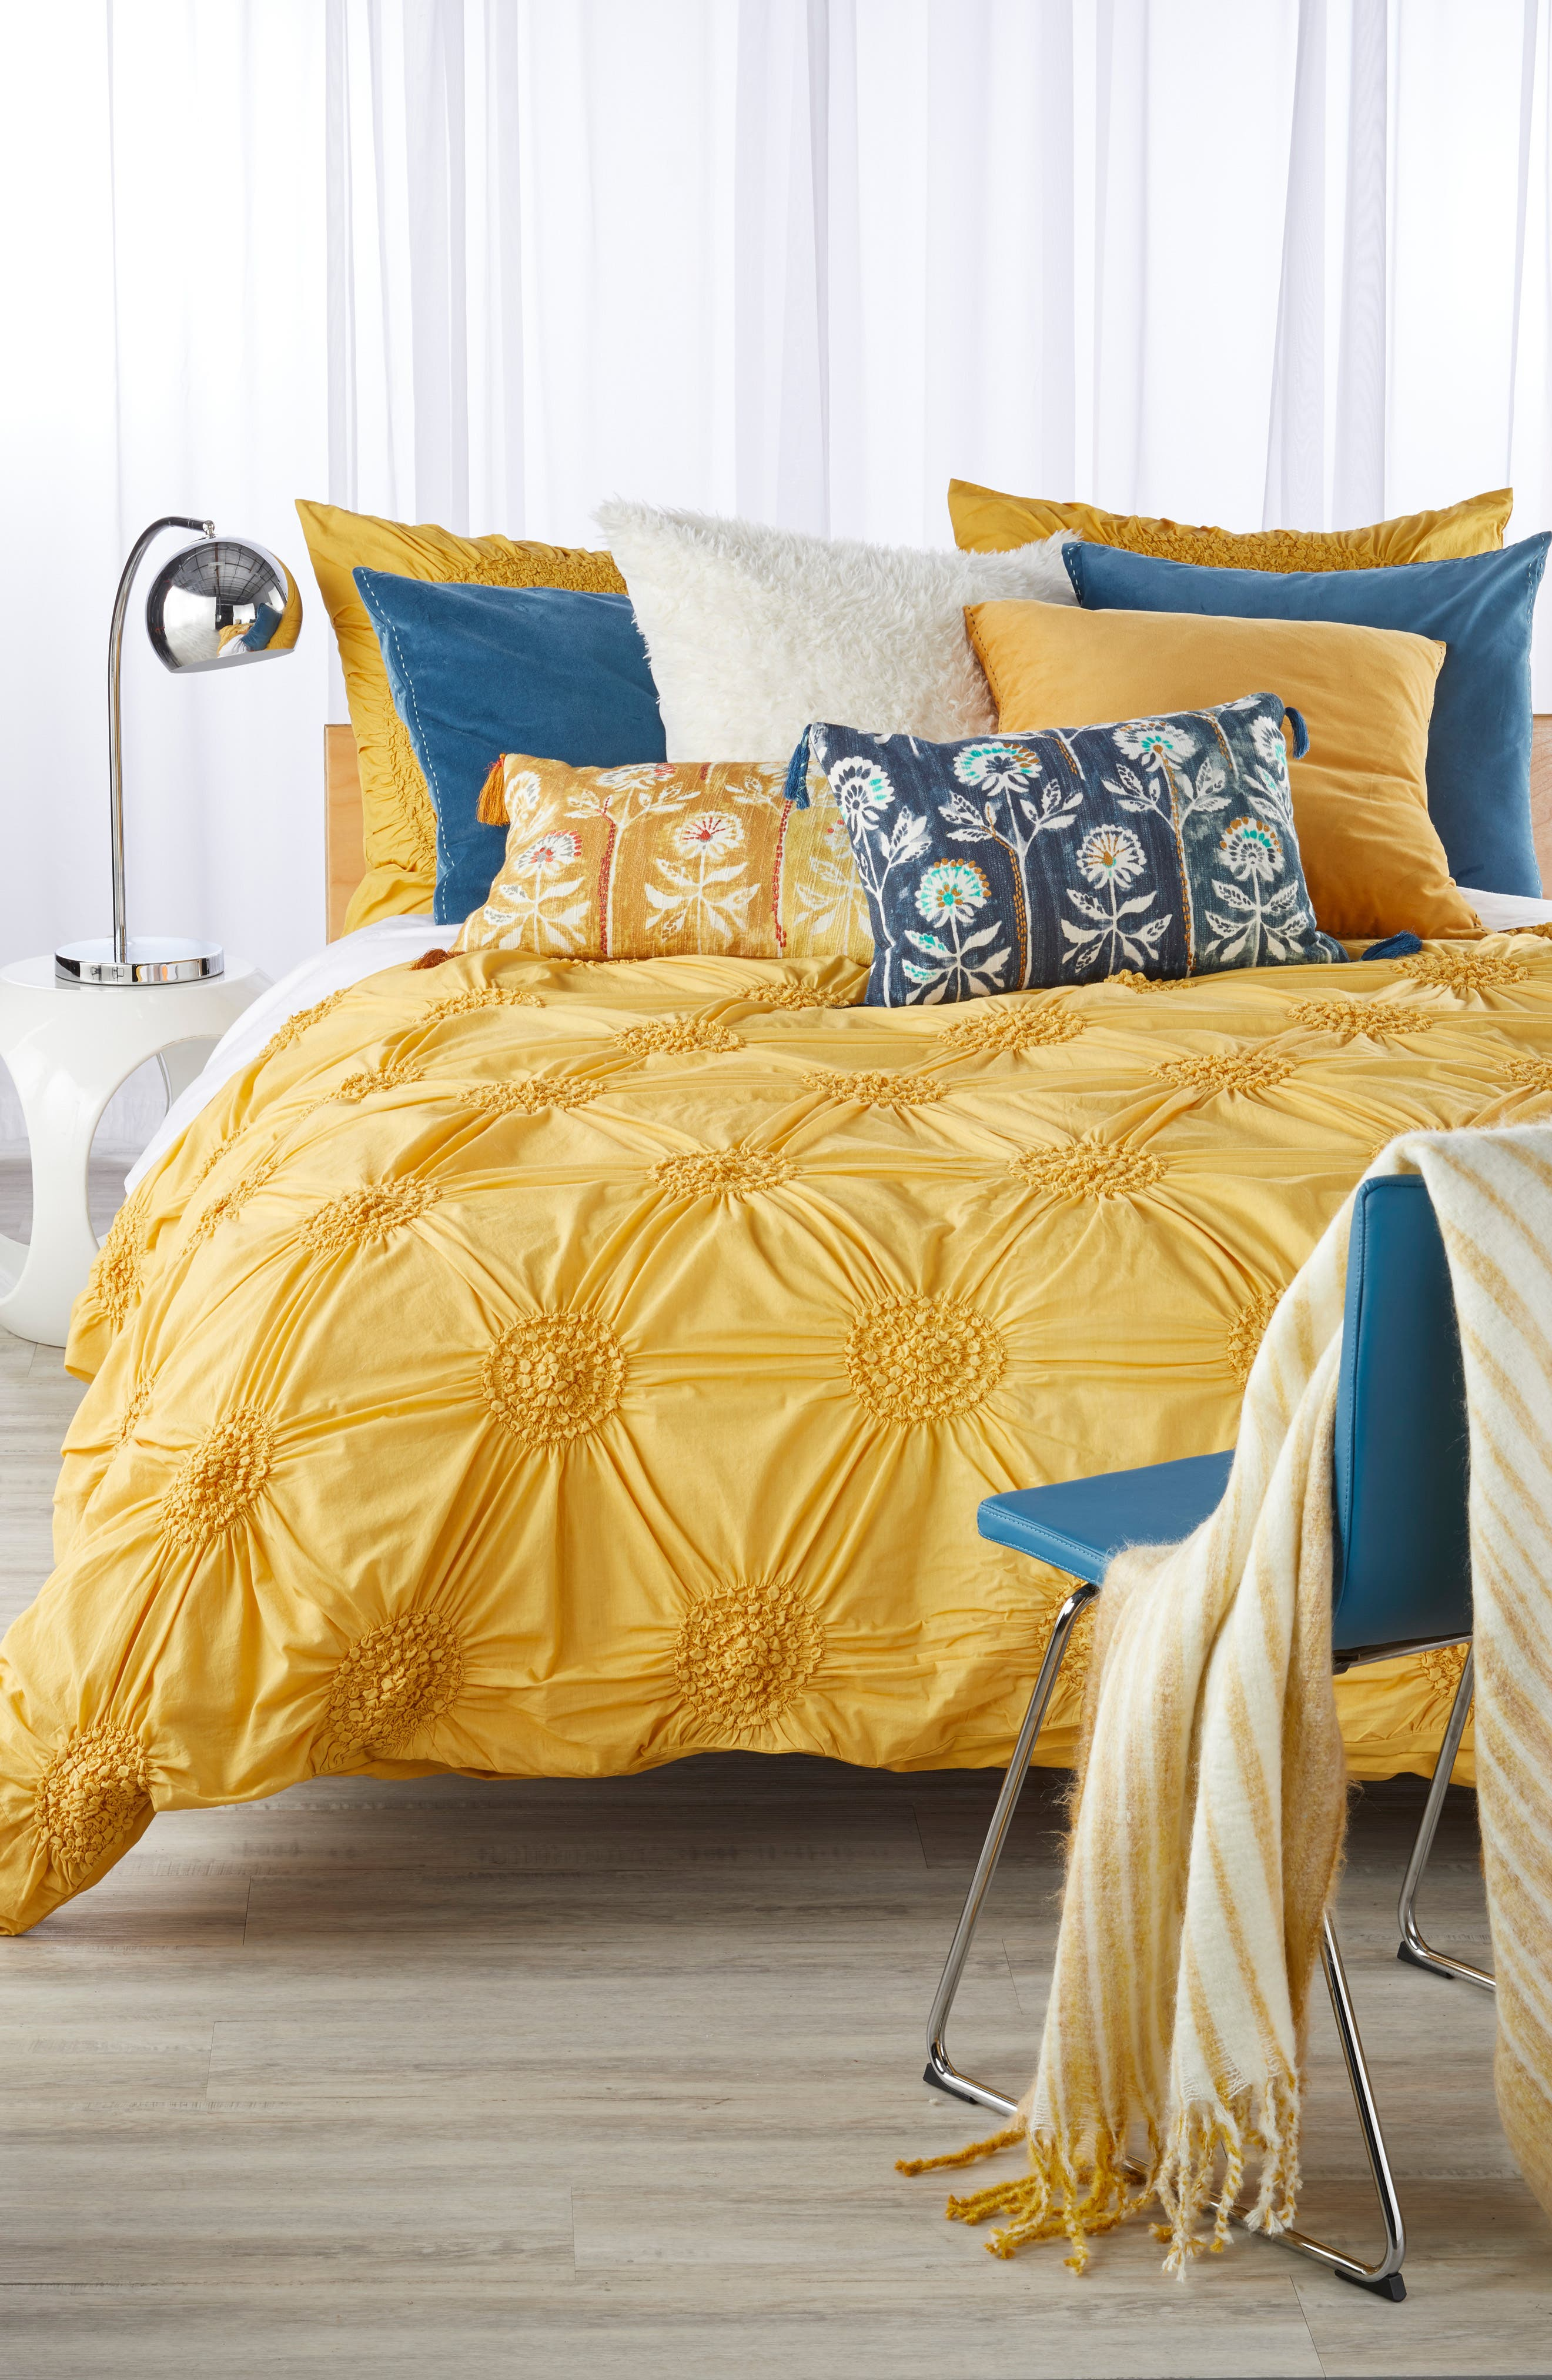 Nordstrom at Home Chloe Bedding Collection